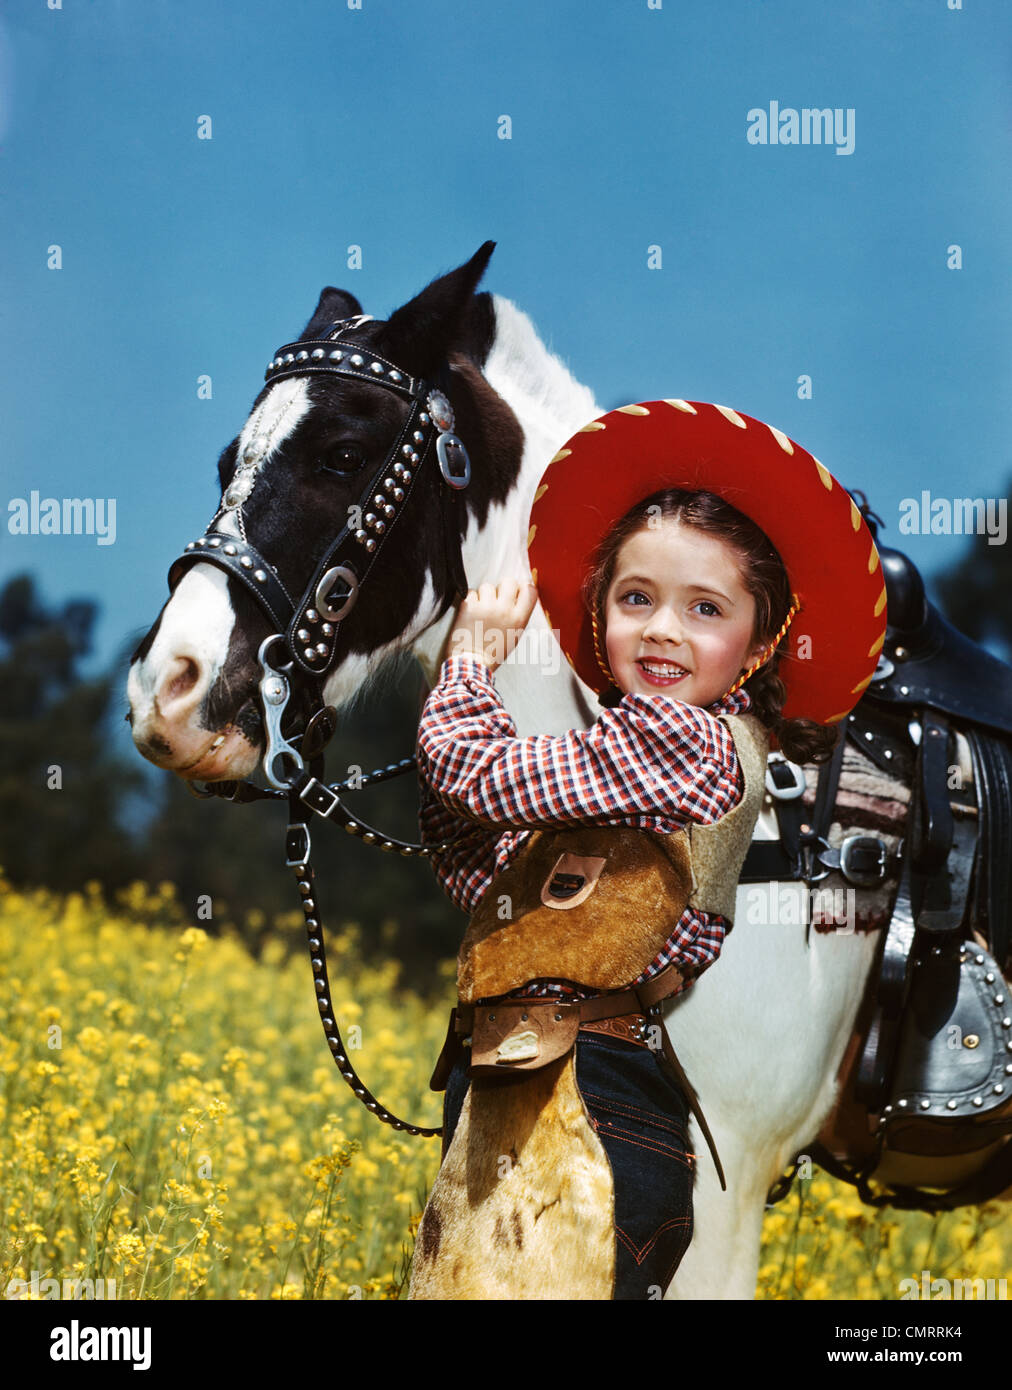 1940s 1950s SMILING GIRL WEARING COWGIRL OUTFIT COWBOY HAT PETTING BLACK AND WHITE PONY - Stock Image